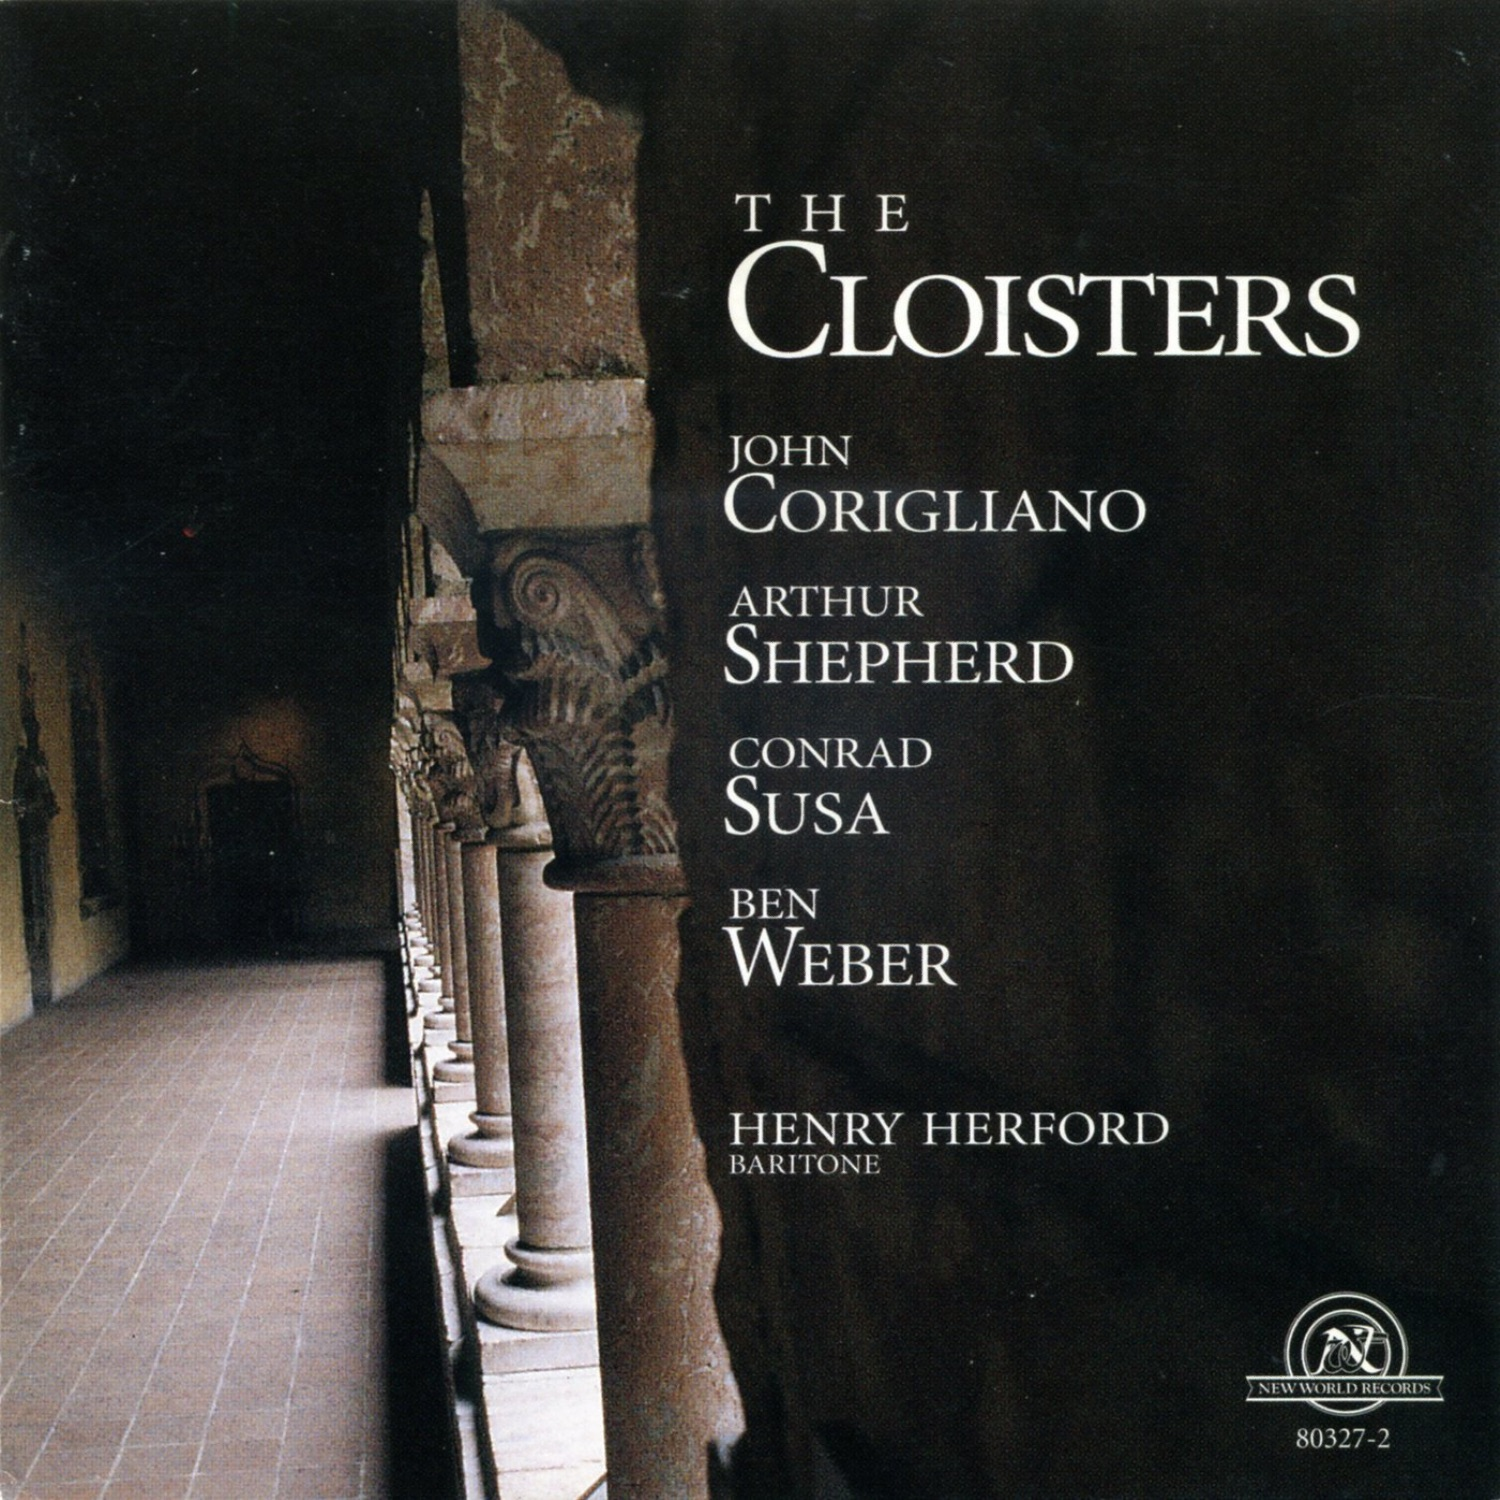 The Cloisters: Vocal Music by John Corigliano, Arthur Shepherd, Conrad Susa, and Ben Weber